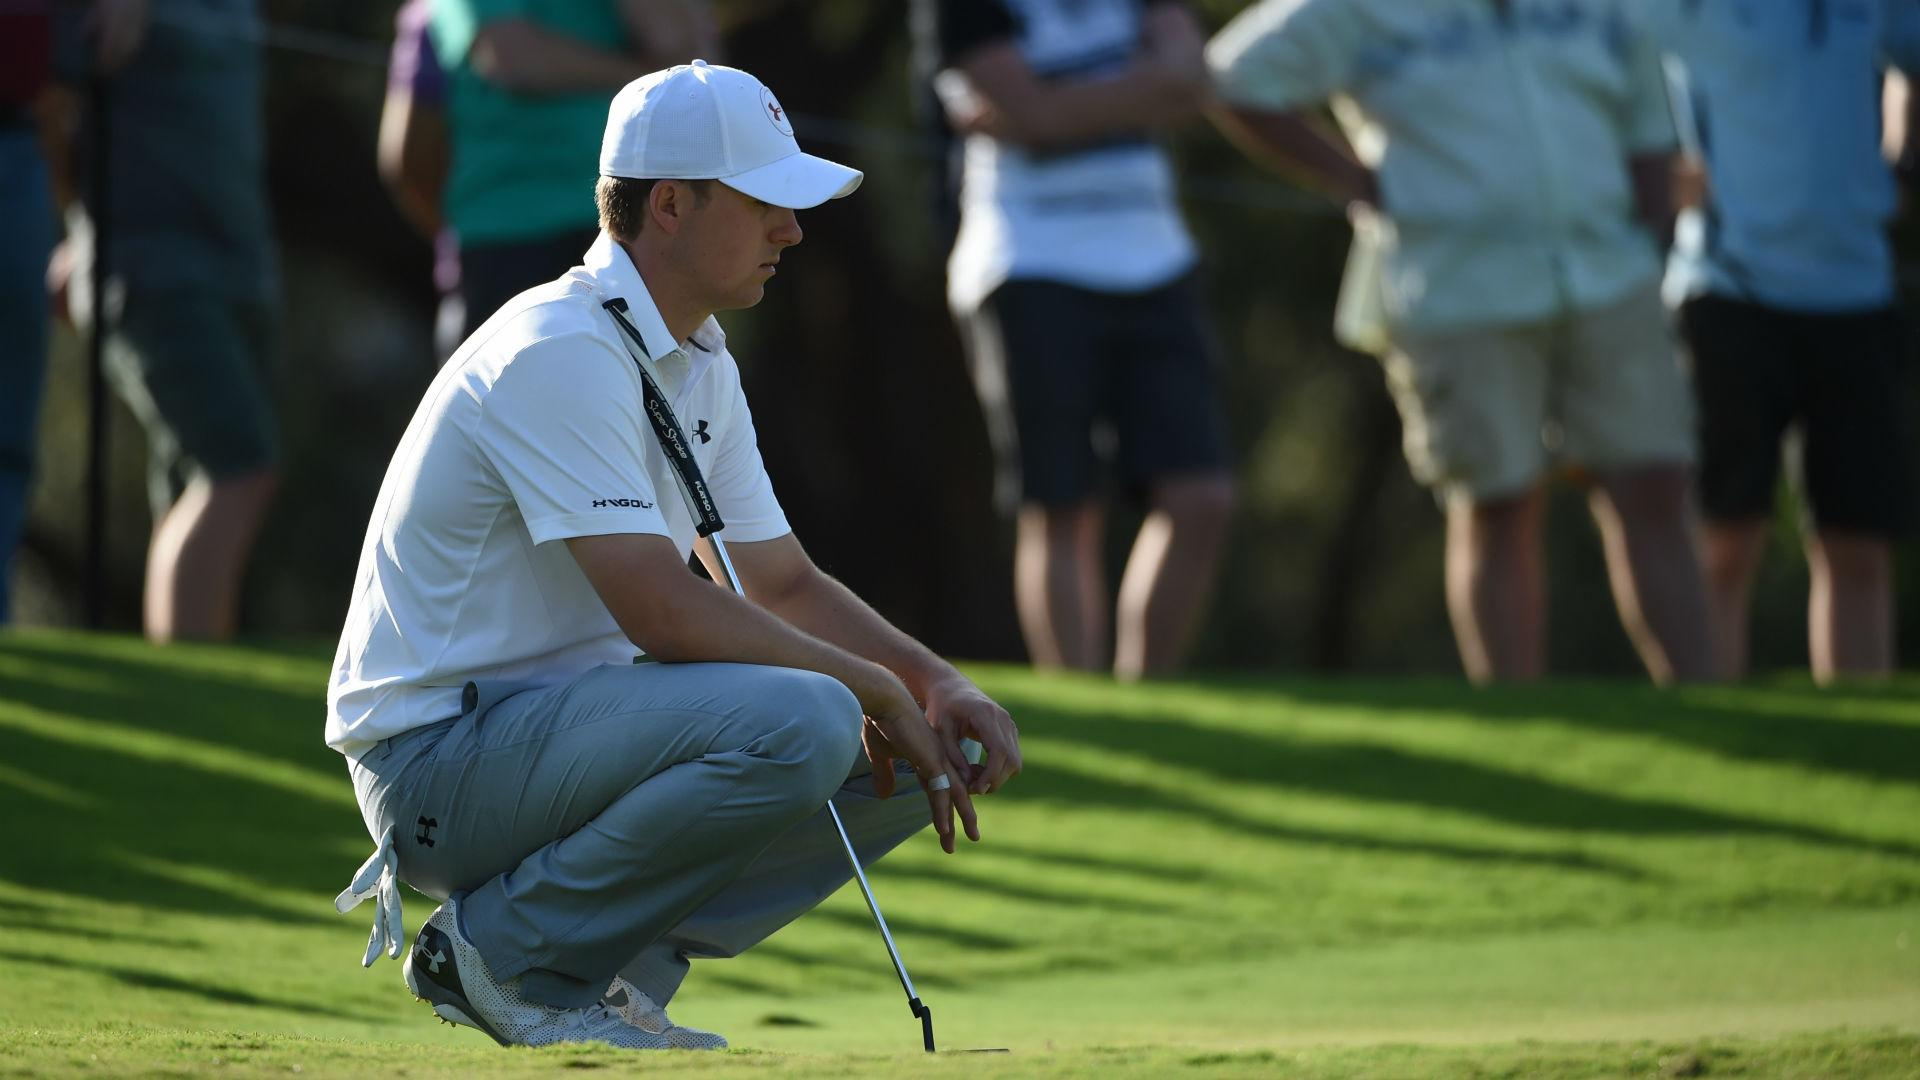 Spieth struggles with Australian Open 'guessing game'